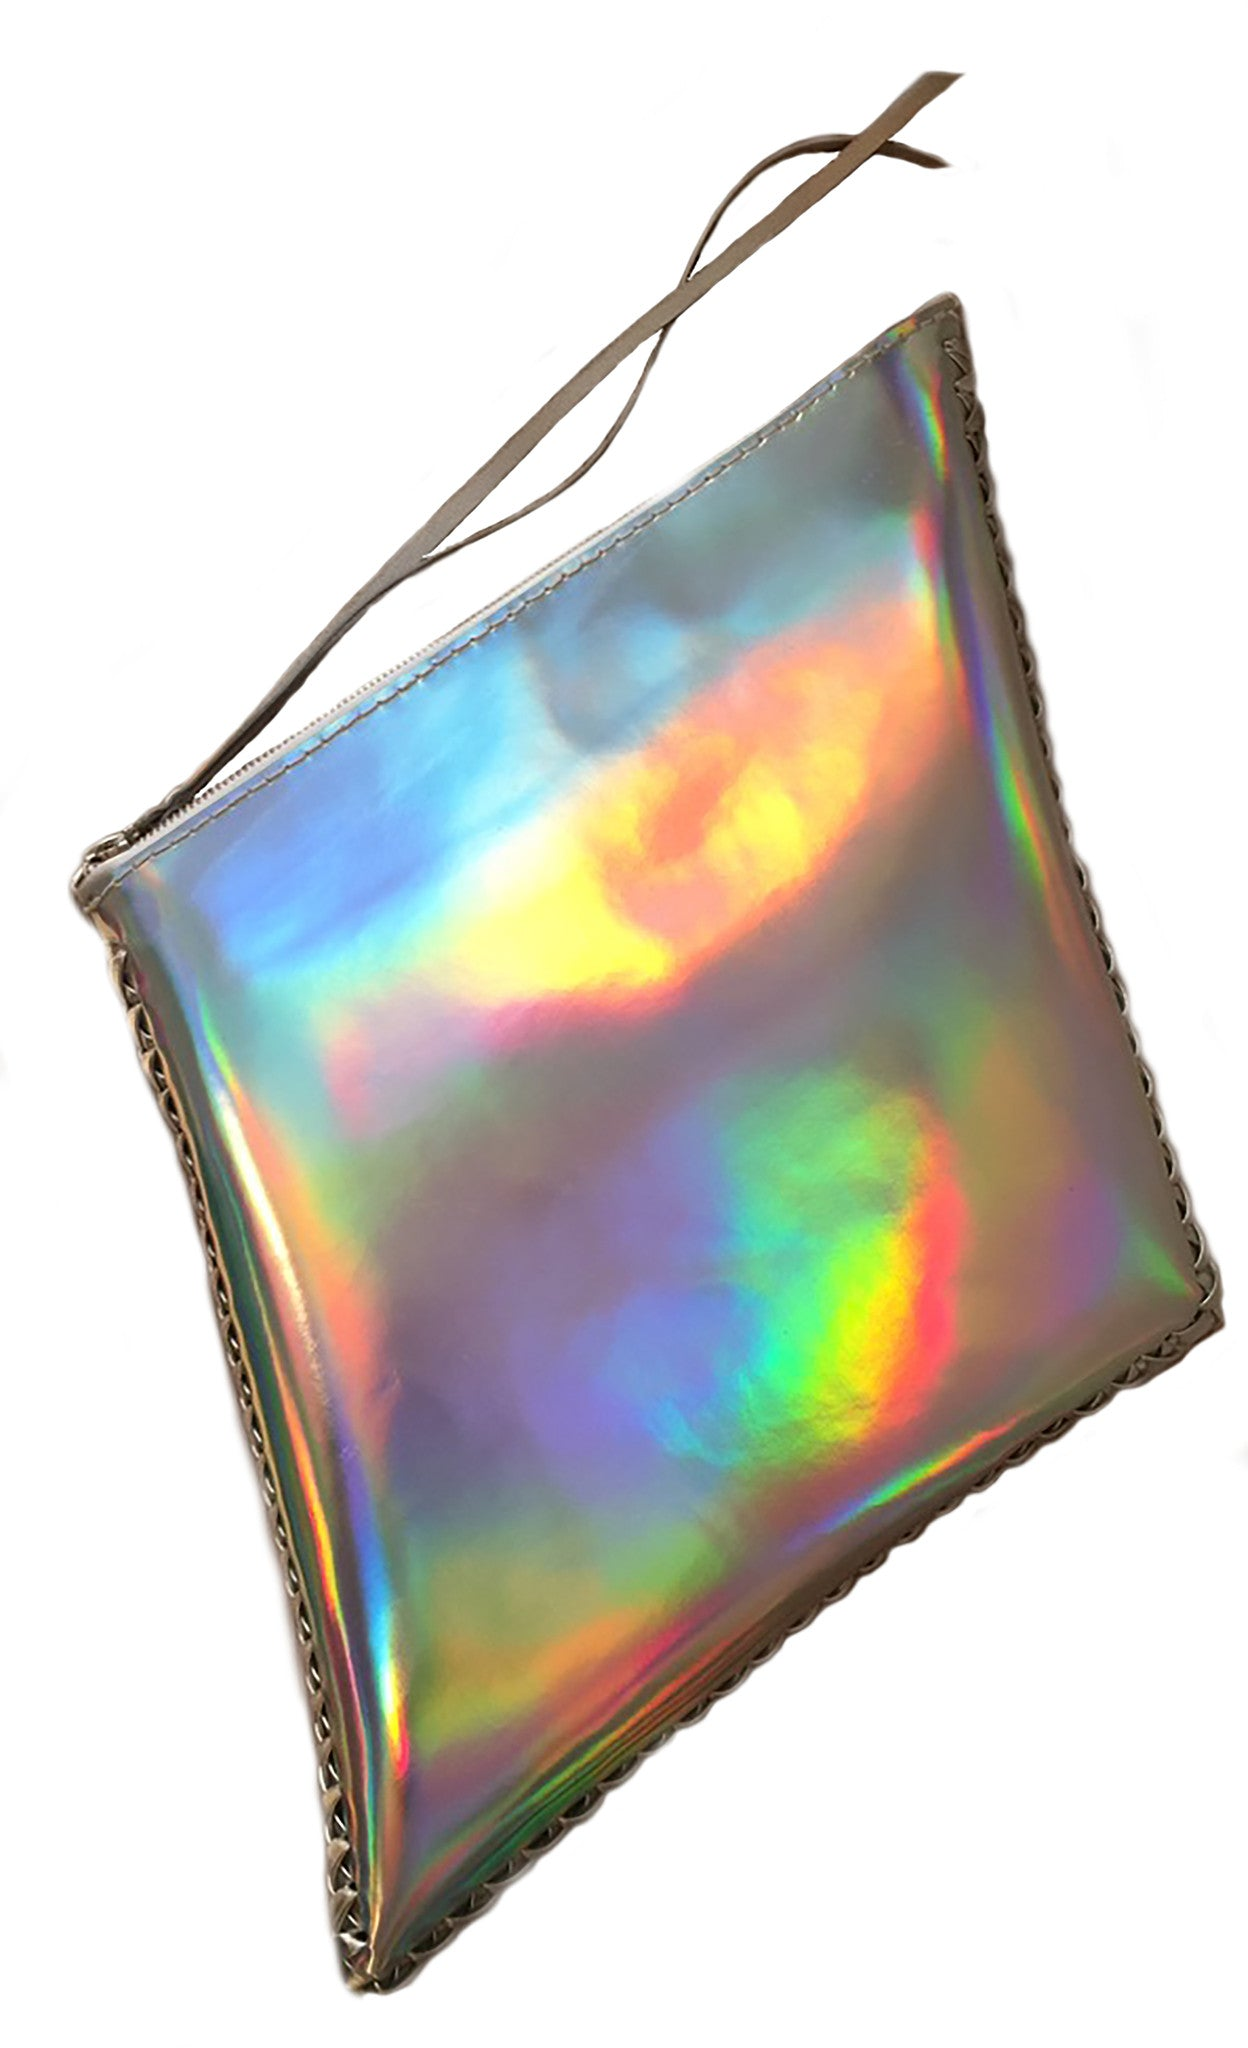 Shiny Reflective Silver Rainbow Patent Leather Diamond Kite Shape Clutch Wendy Nichol Luxury Handbag Purse Designer Handmade in NYC New York City Large Thin Structured Clutch Evening Red Carpet High Quality Leather Maggie Laine IMG Model